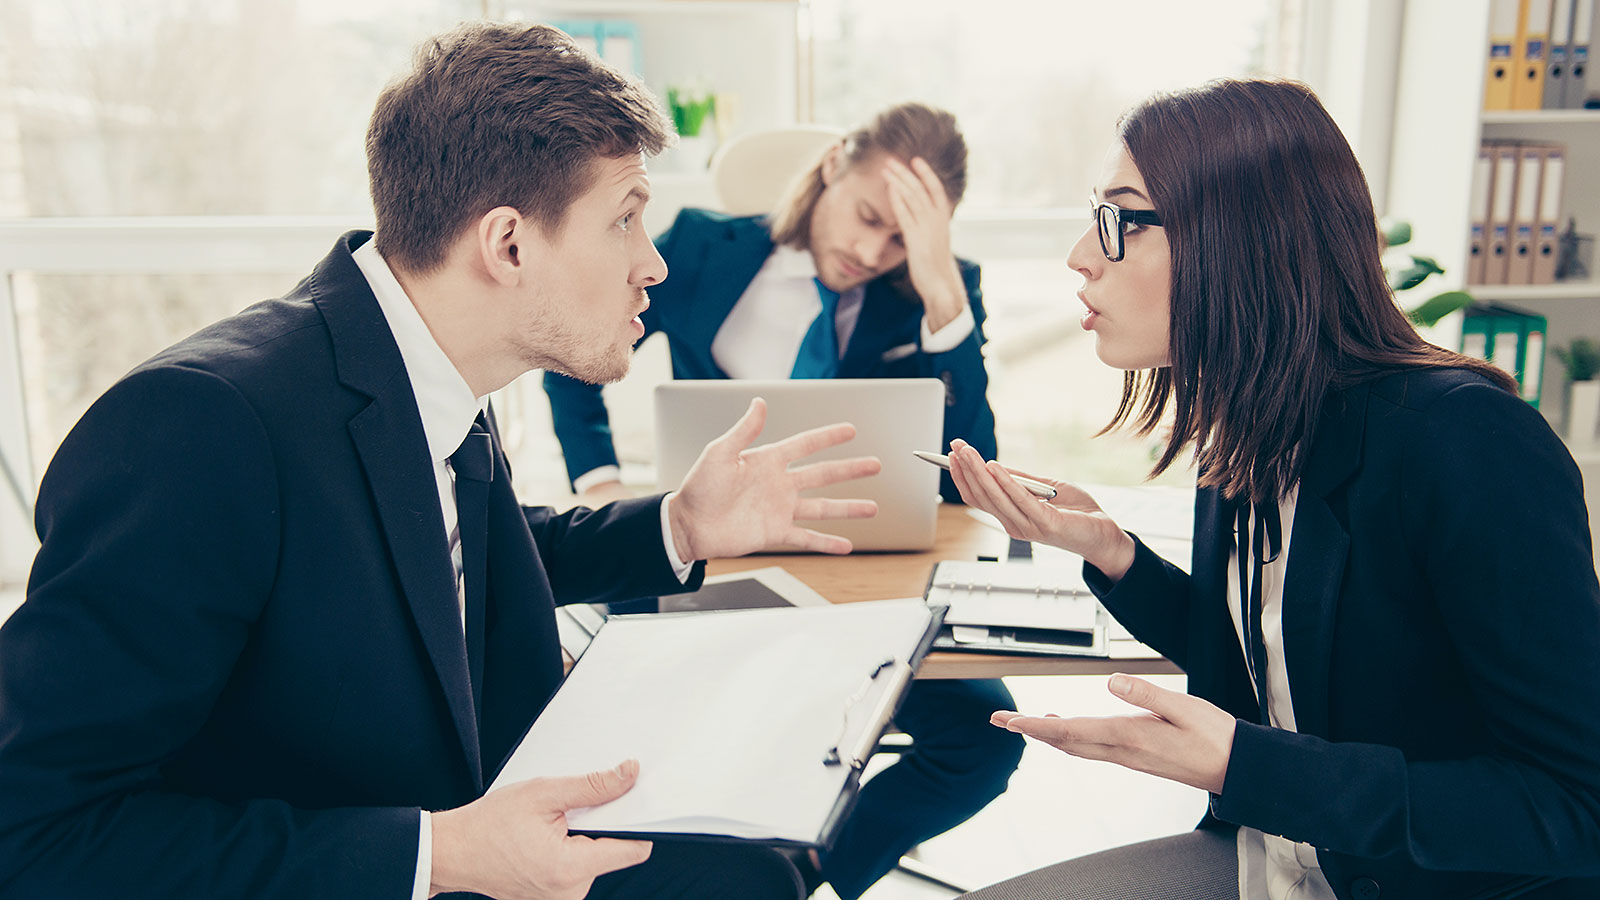 How to solve conflict productively at work